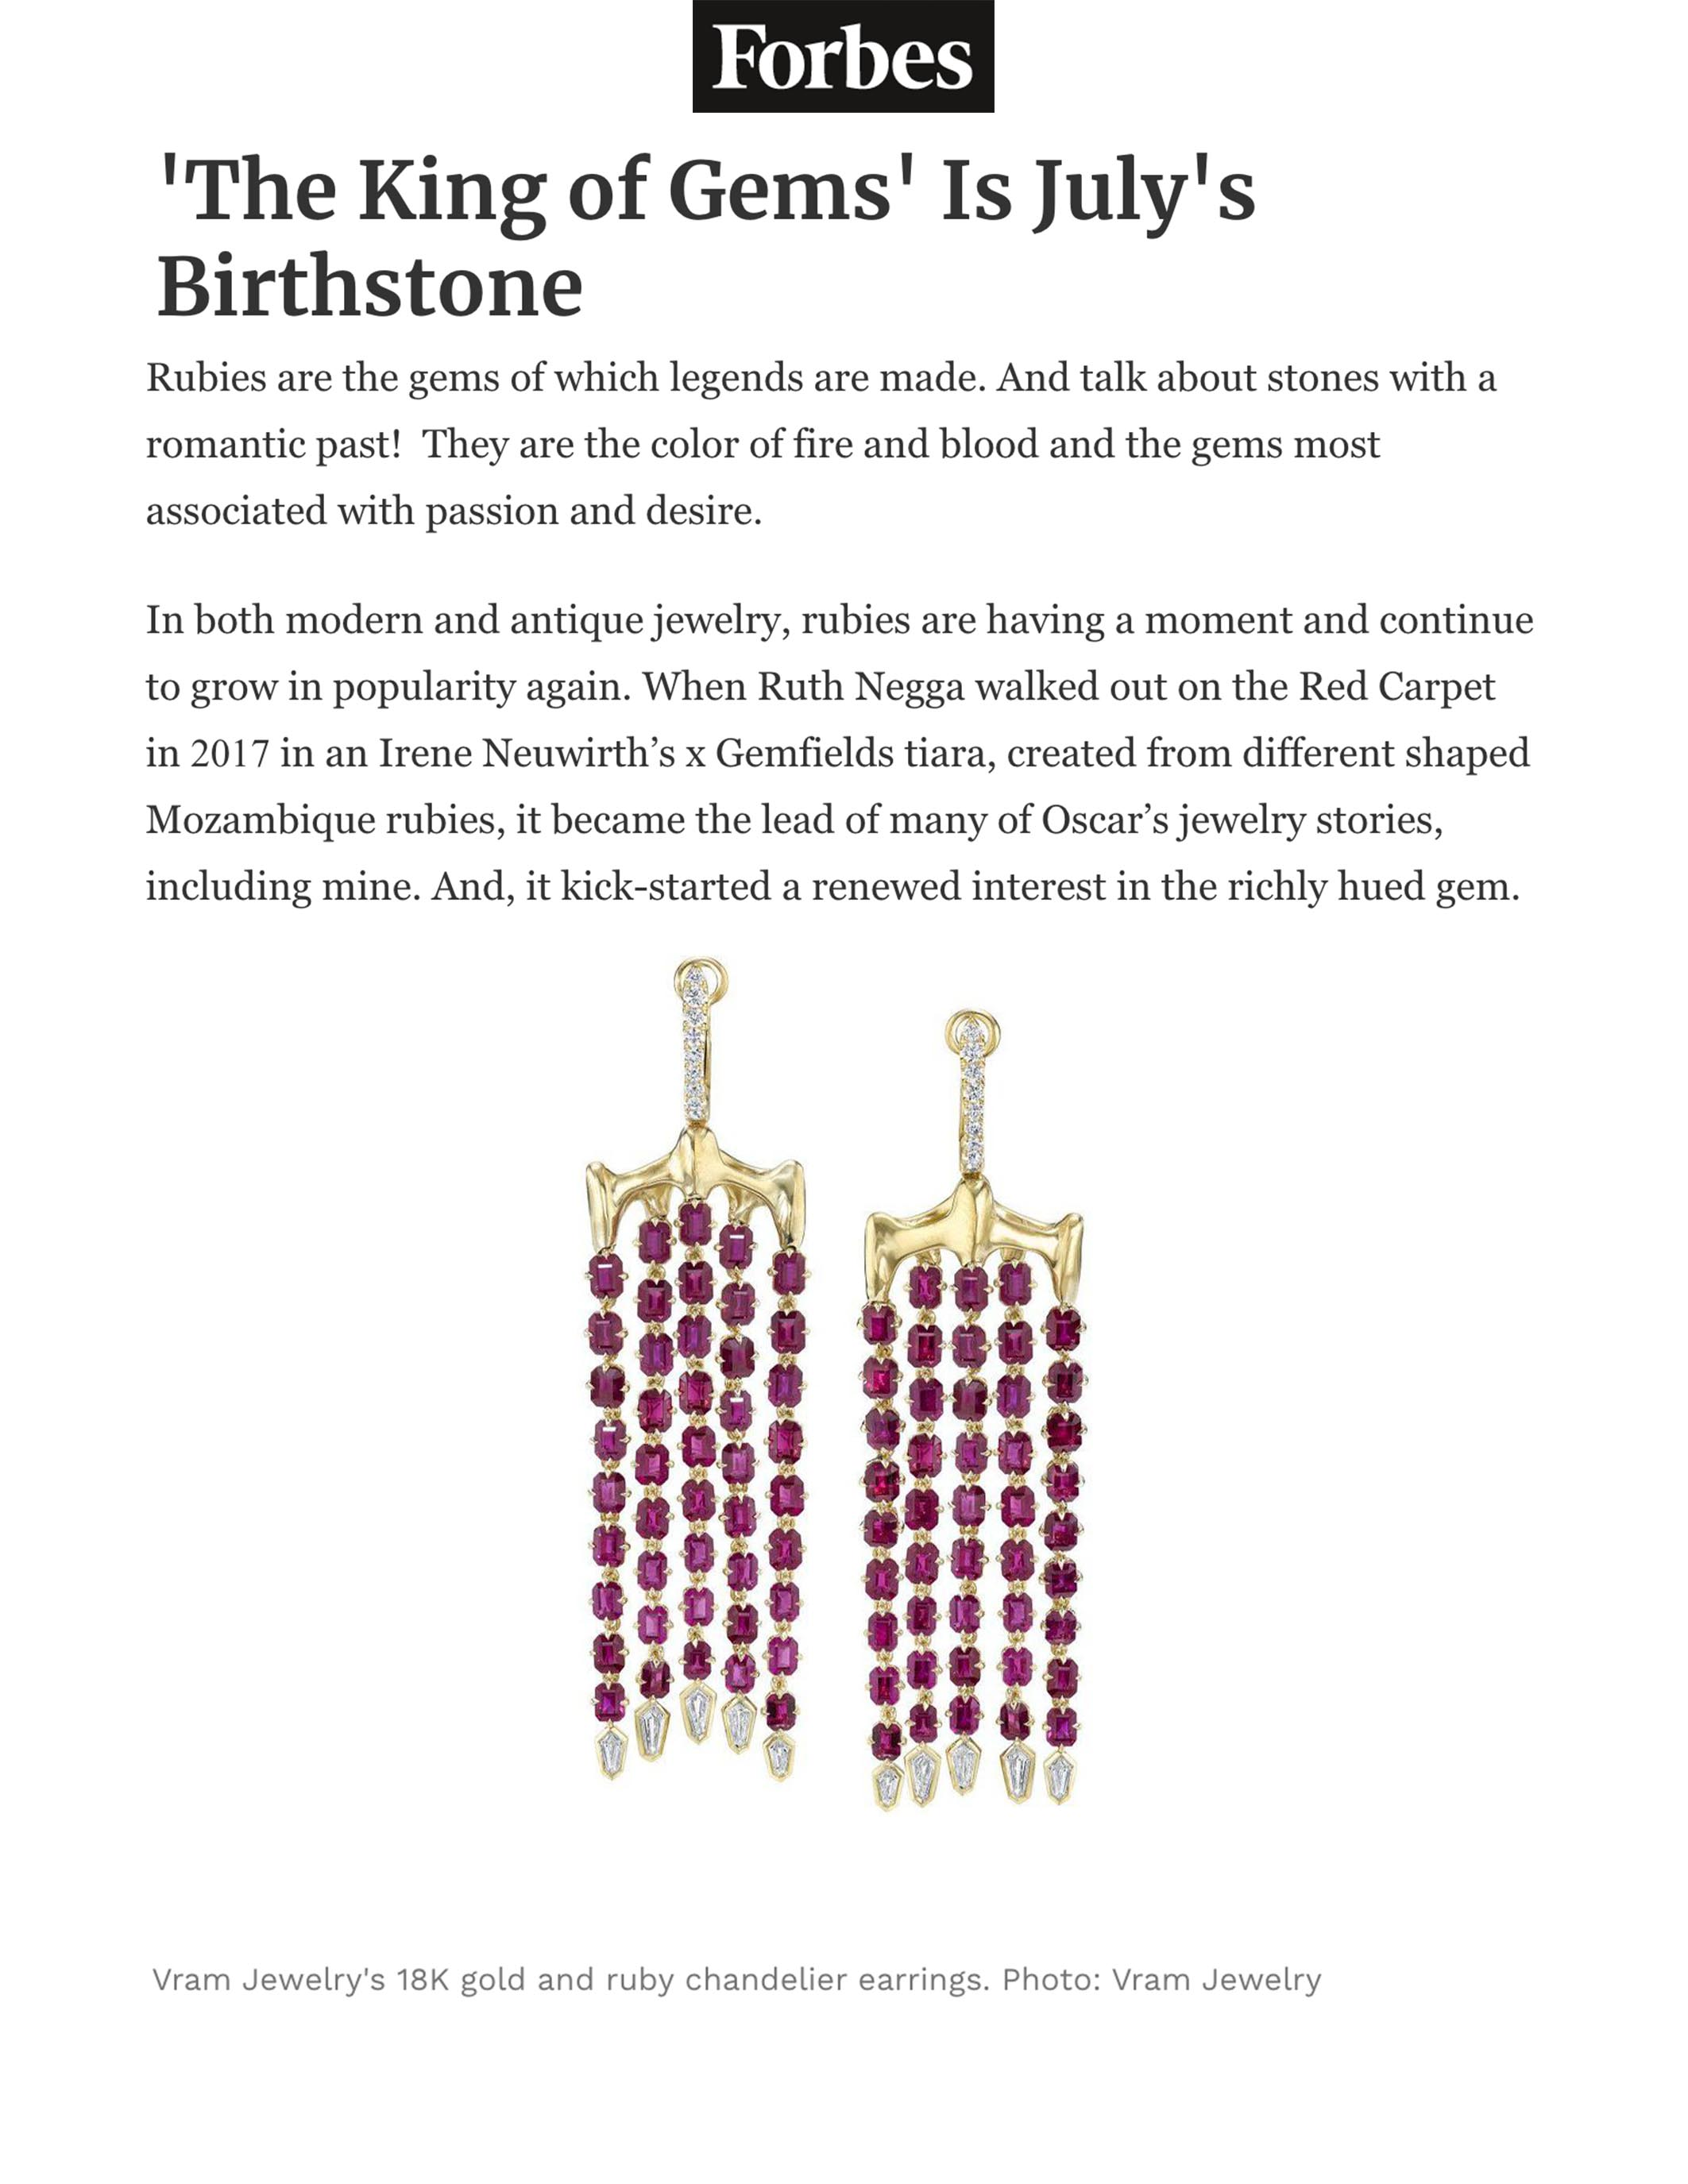 VRAM Ruby Chrona Chandelier Earrings Forbes July 2019